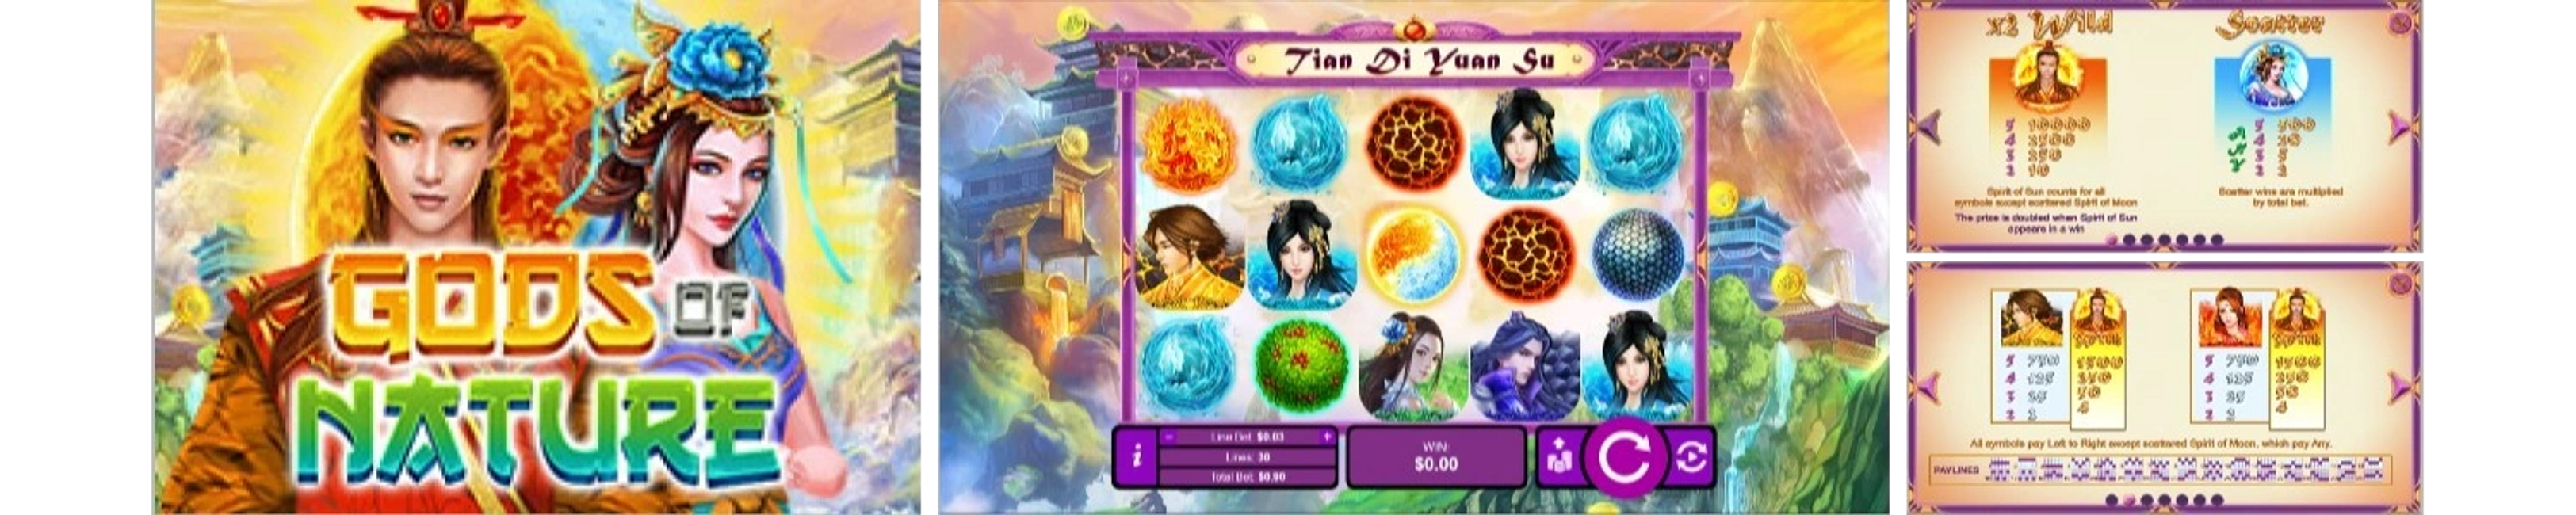 Gods of Nature Online Video Slot Review